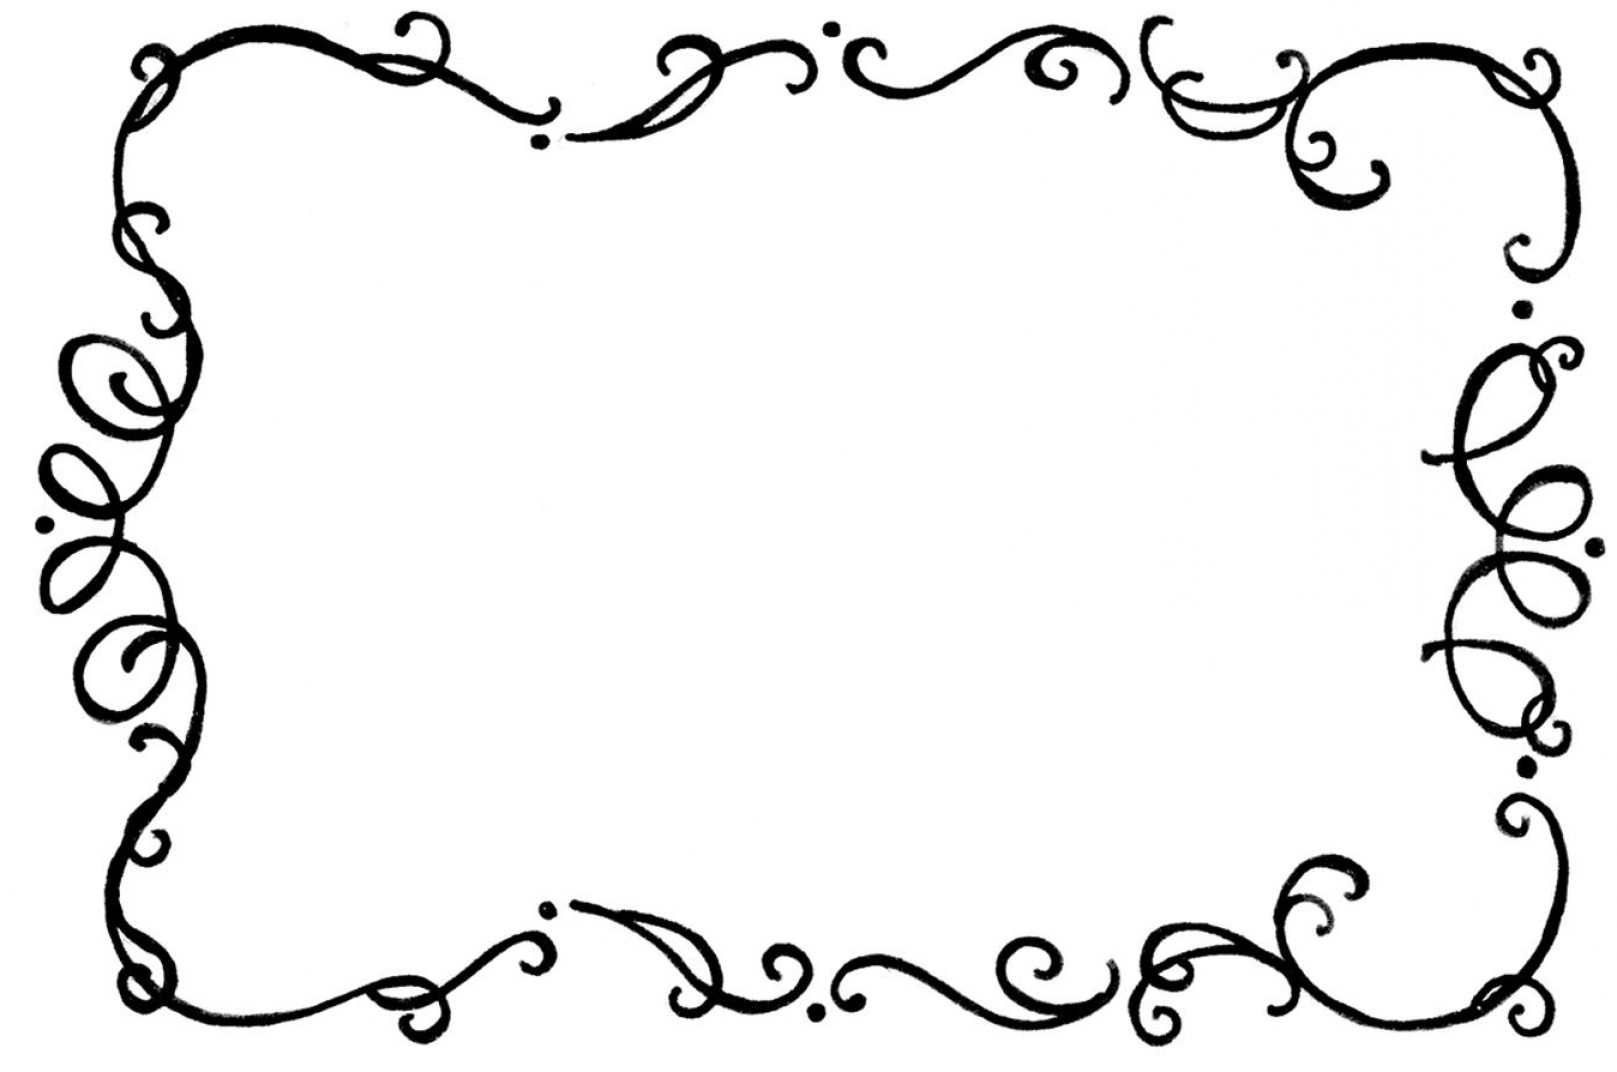 free curly cues clipart - Clipground